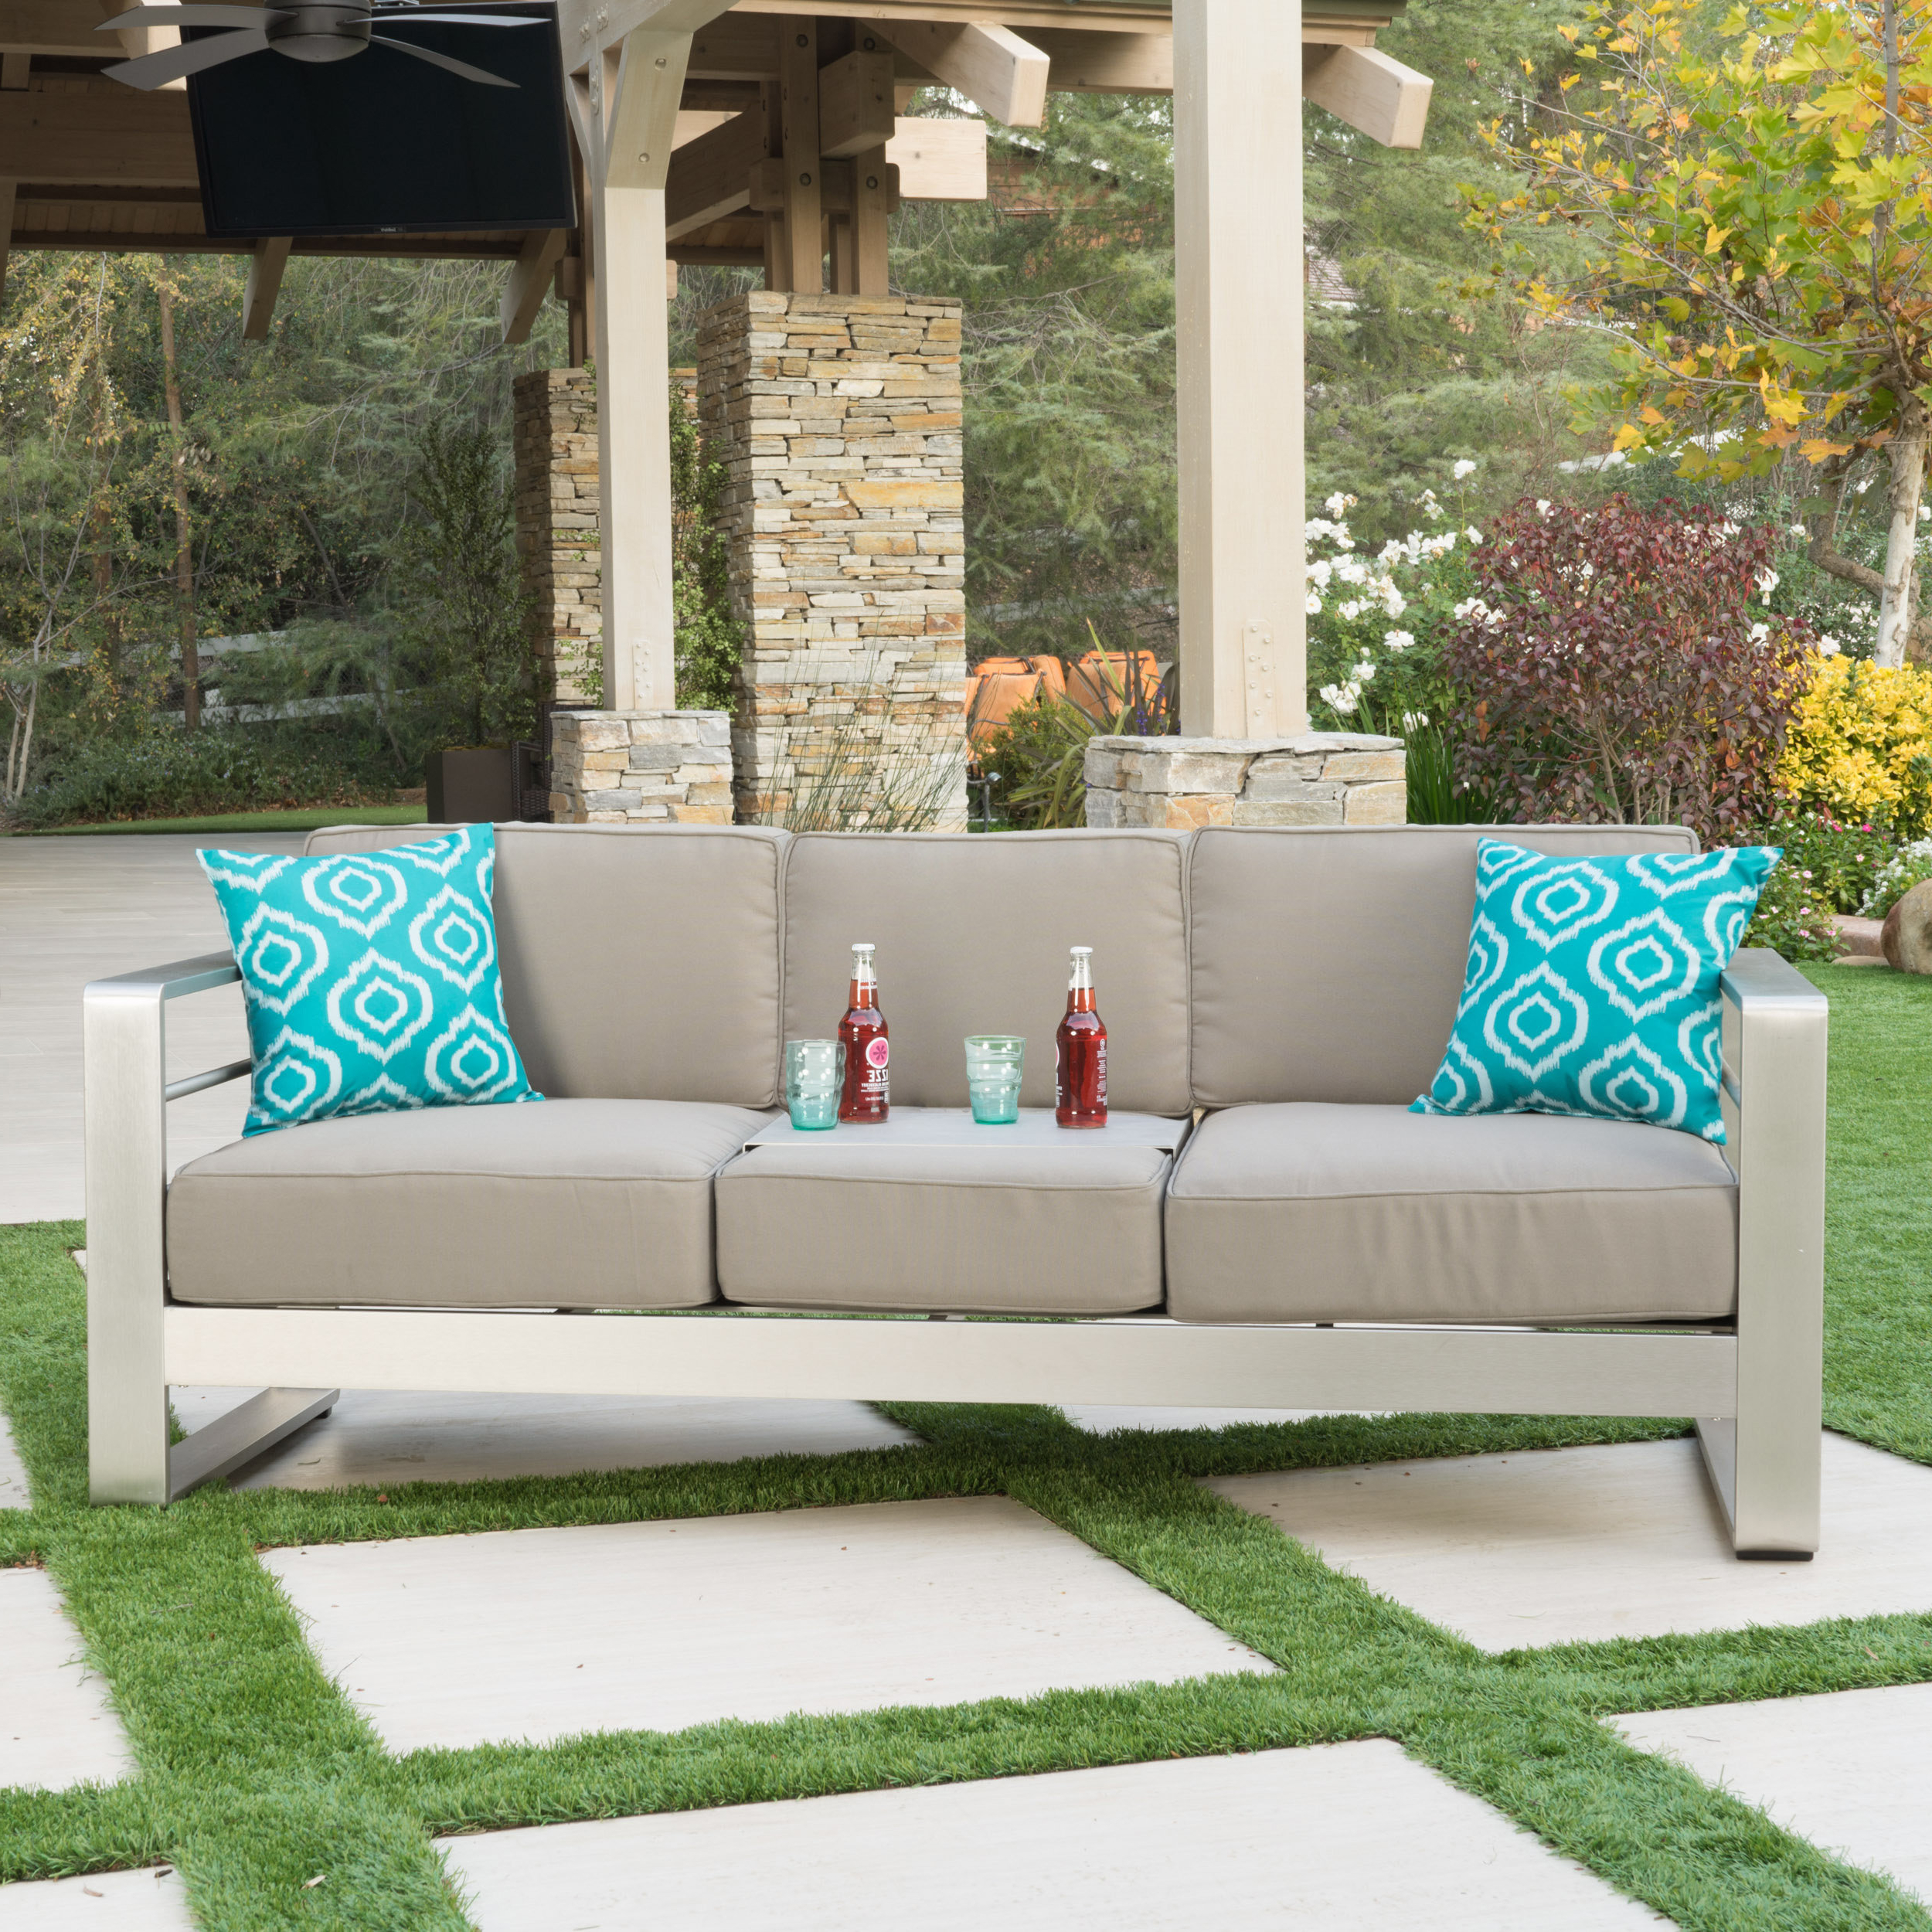 Famous Royalston Patio Sofa With Cushions Intended For Royalston Patio Sofas With Cushions (View 5 of 20)